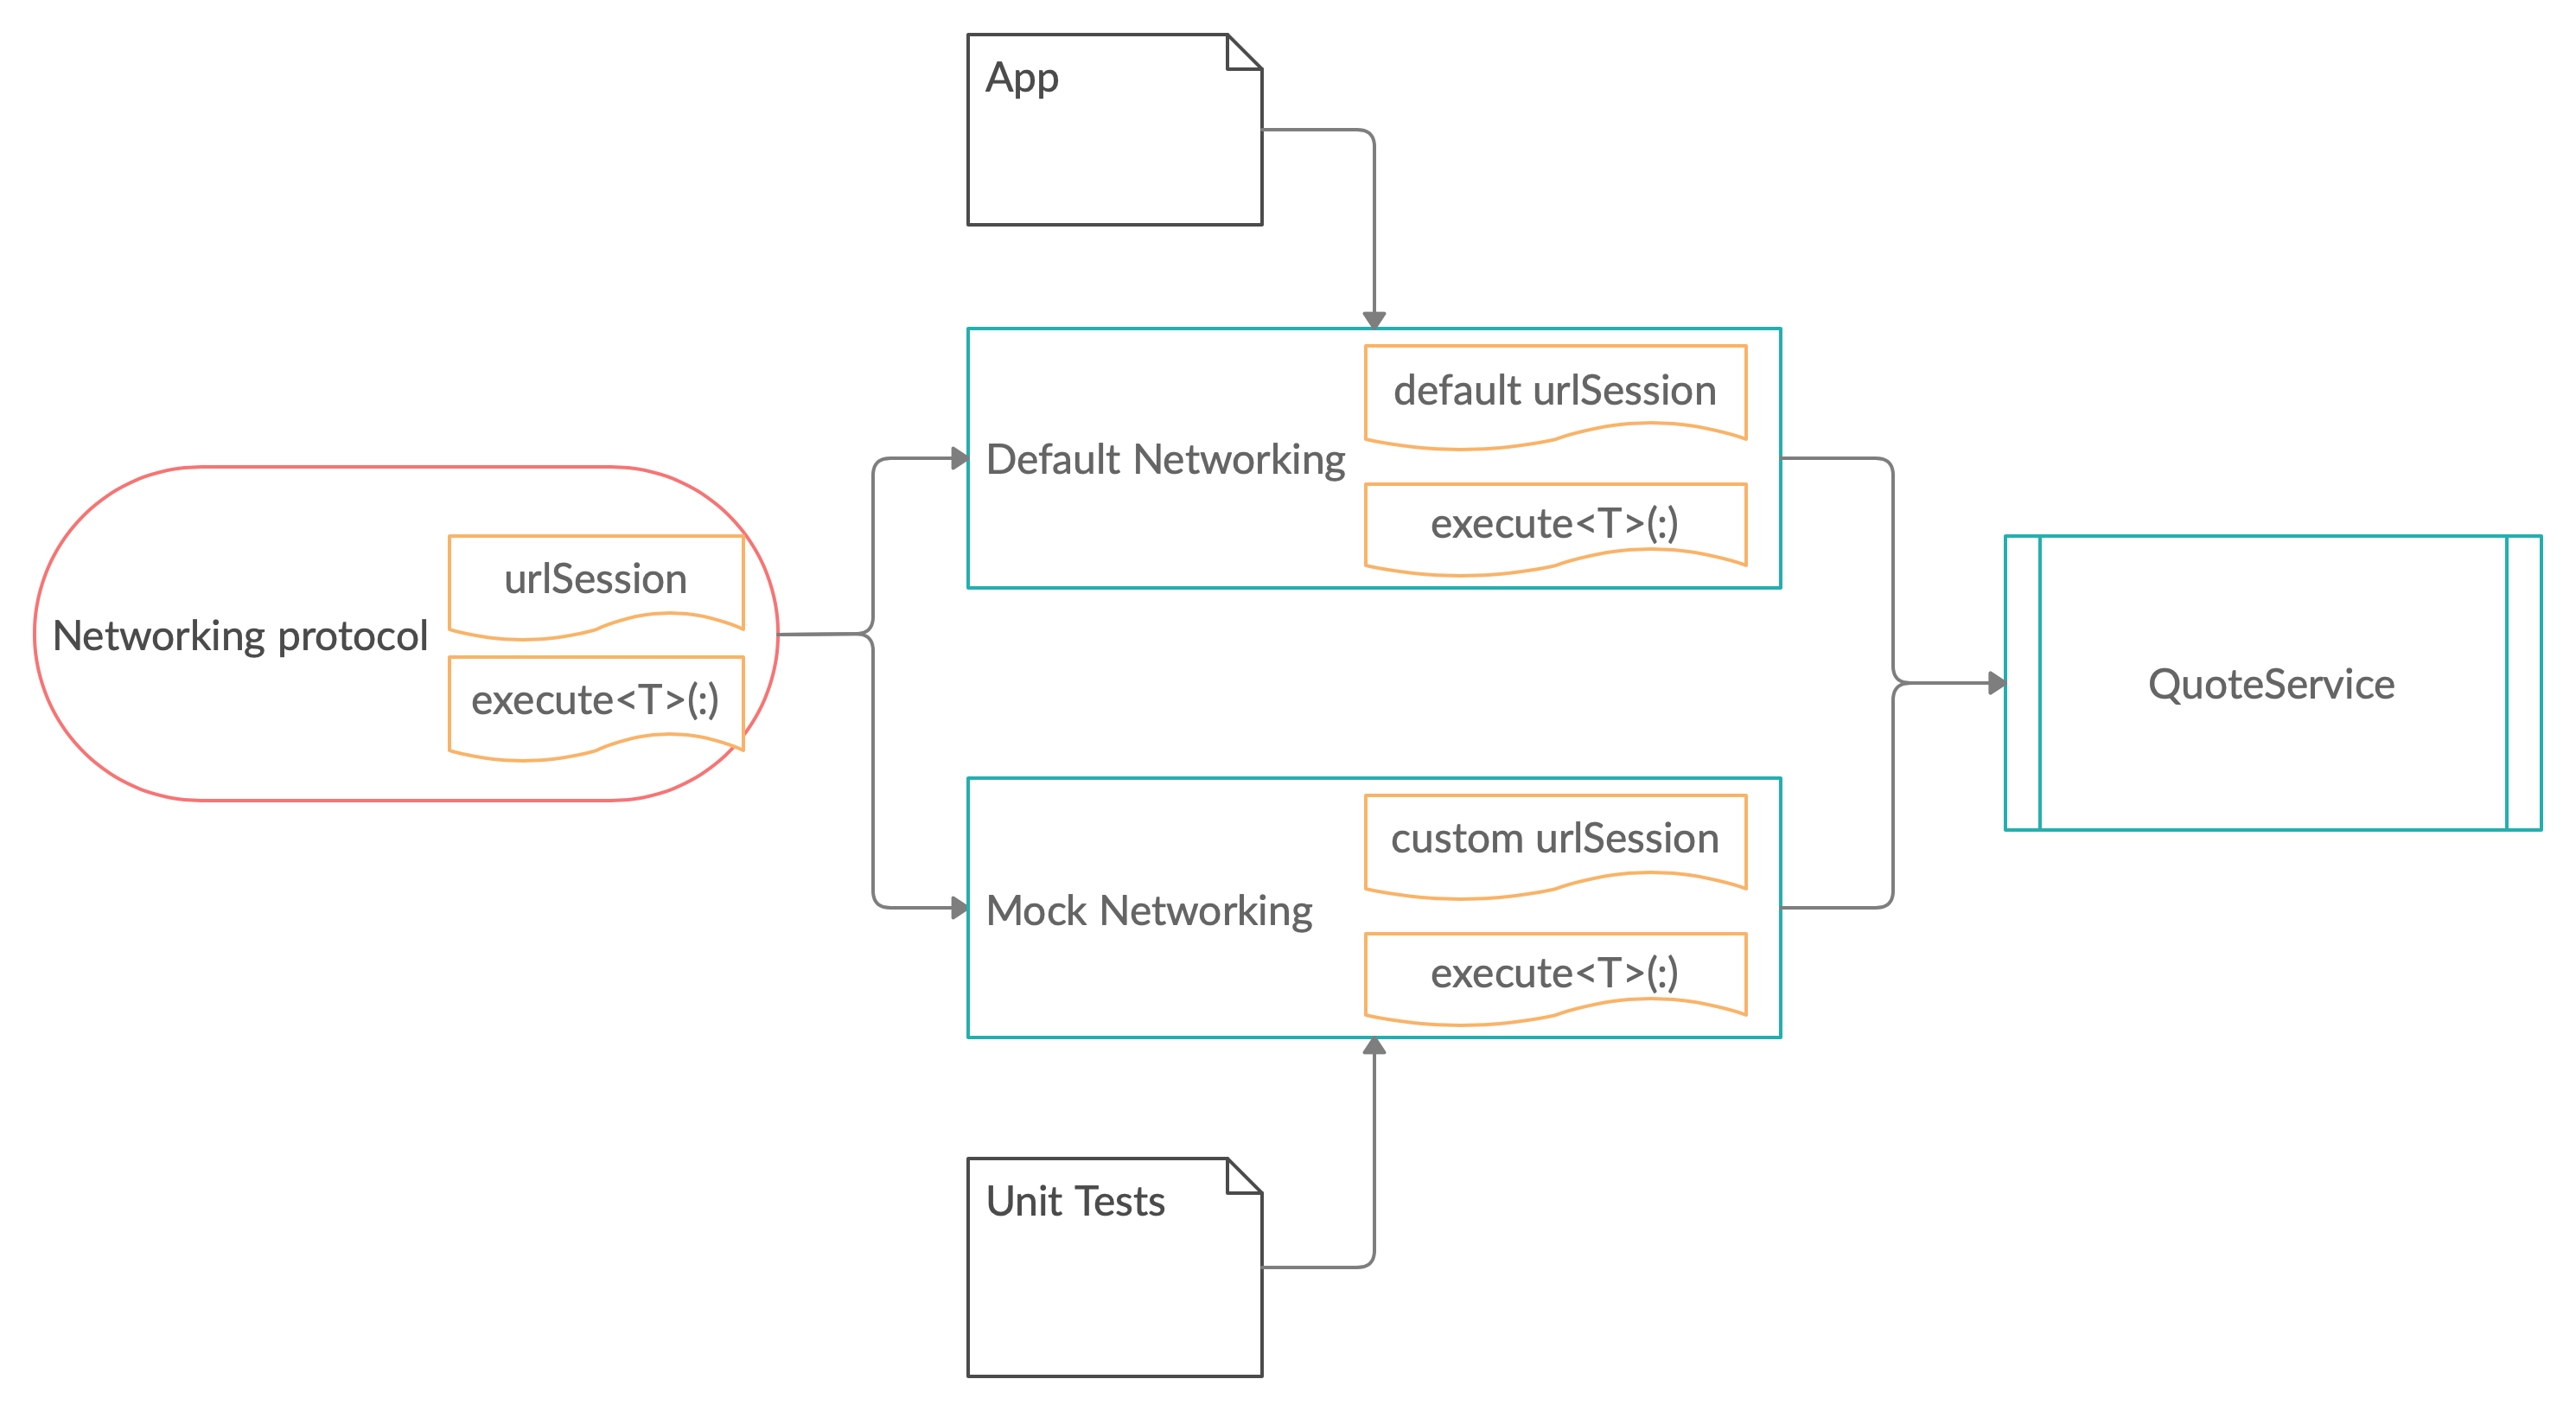 diagram of Different Networking instances from App and Unit Tests